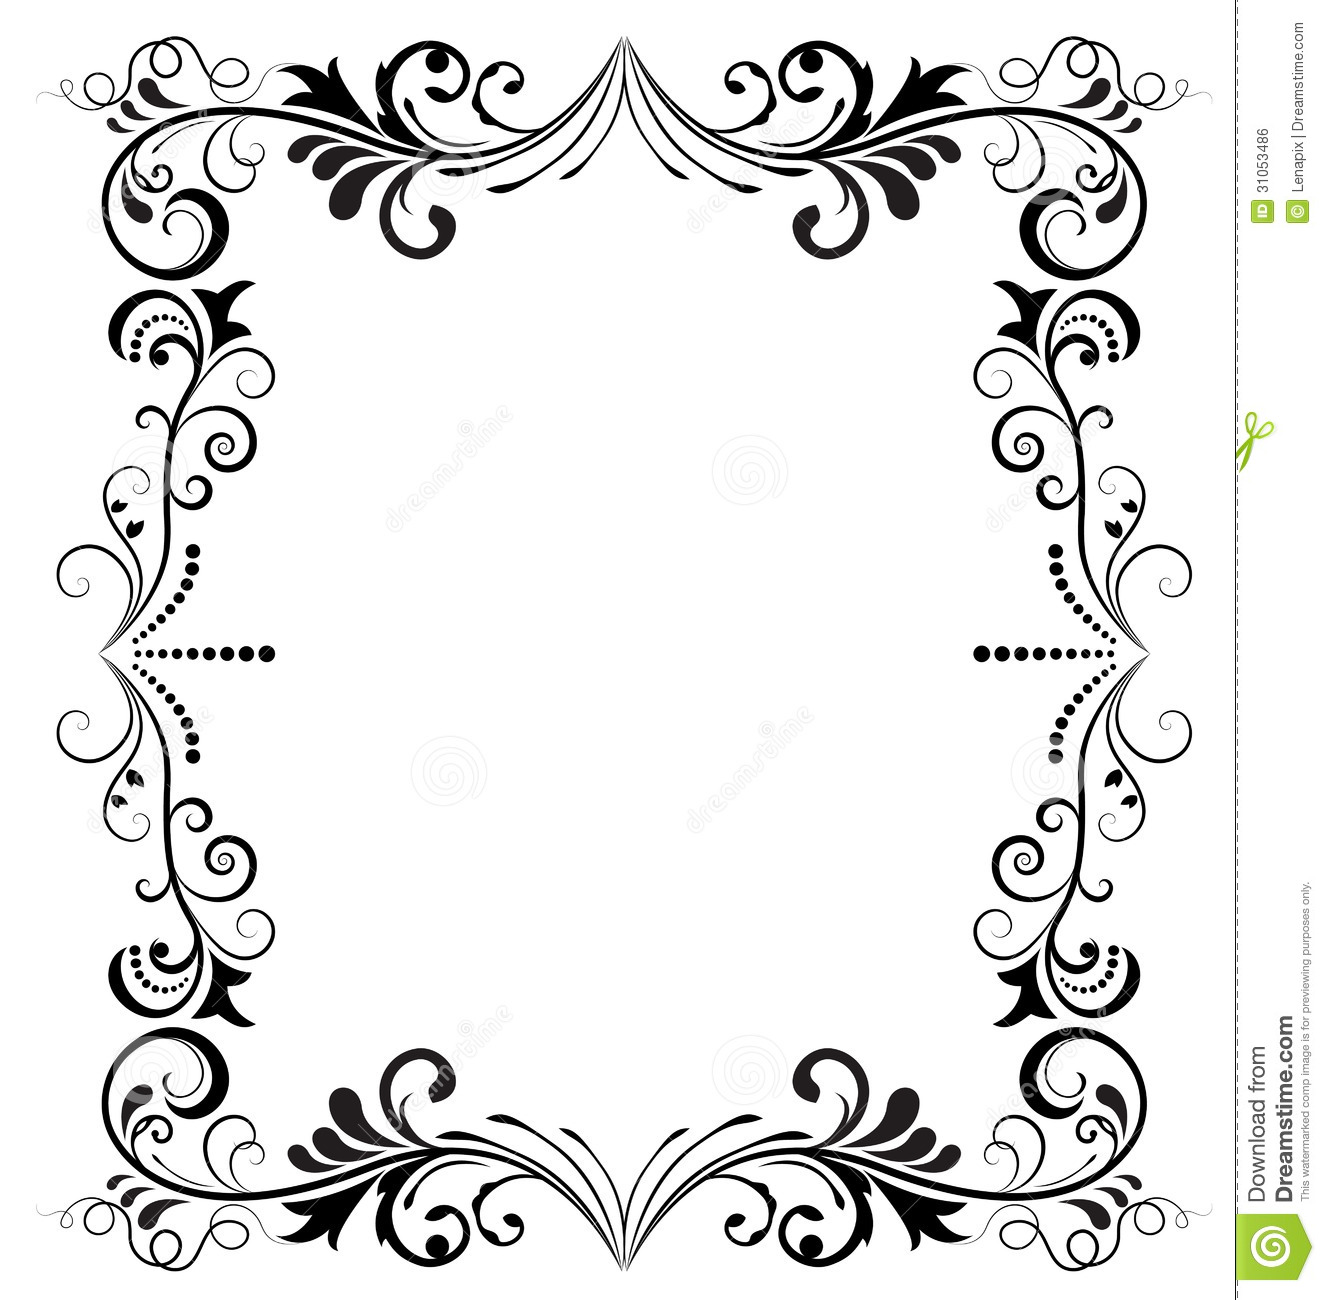 Tube Invitations For Quinceaneras for good invitation layout